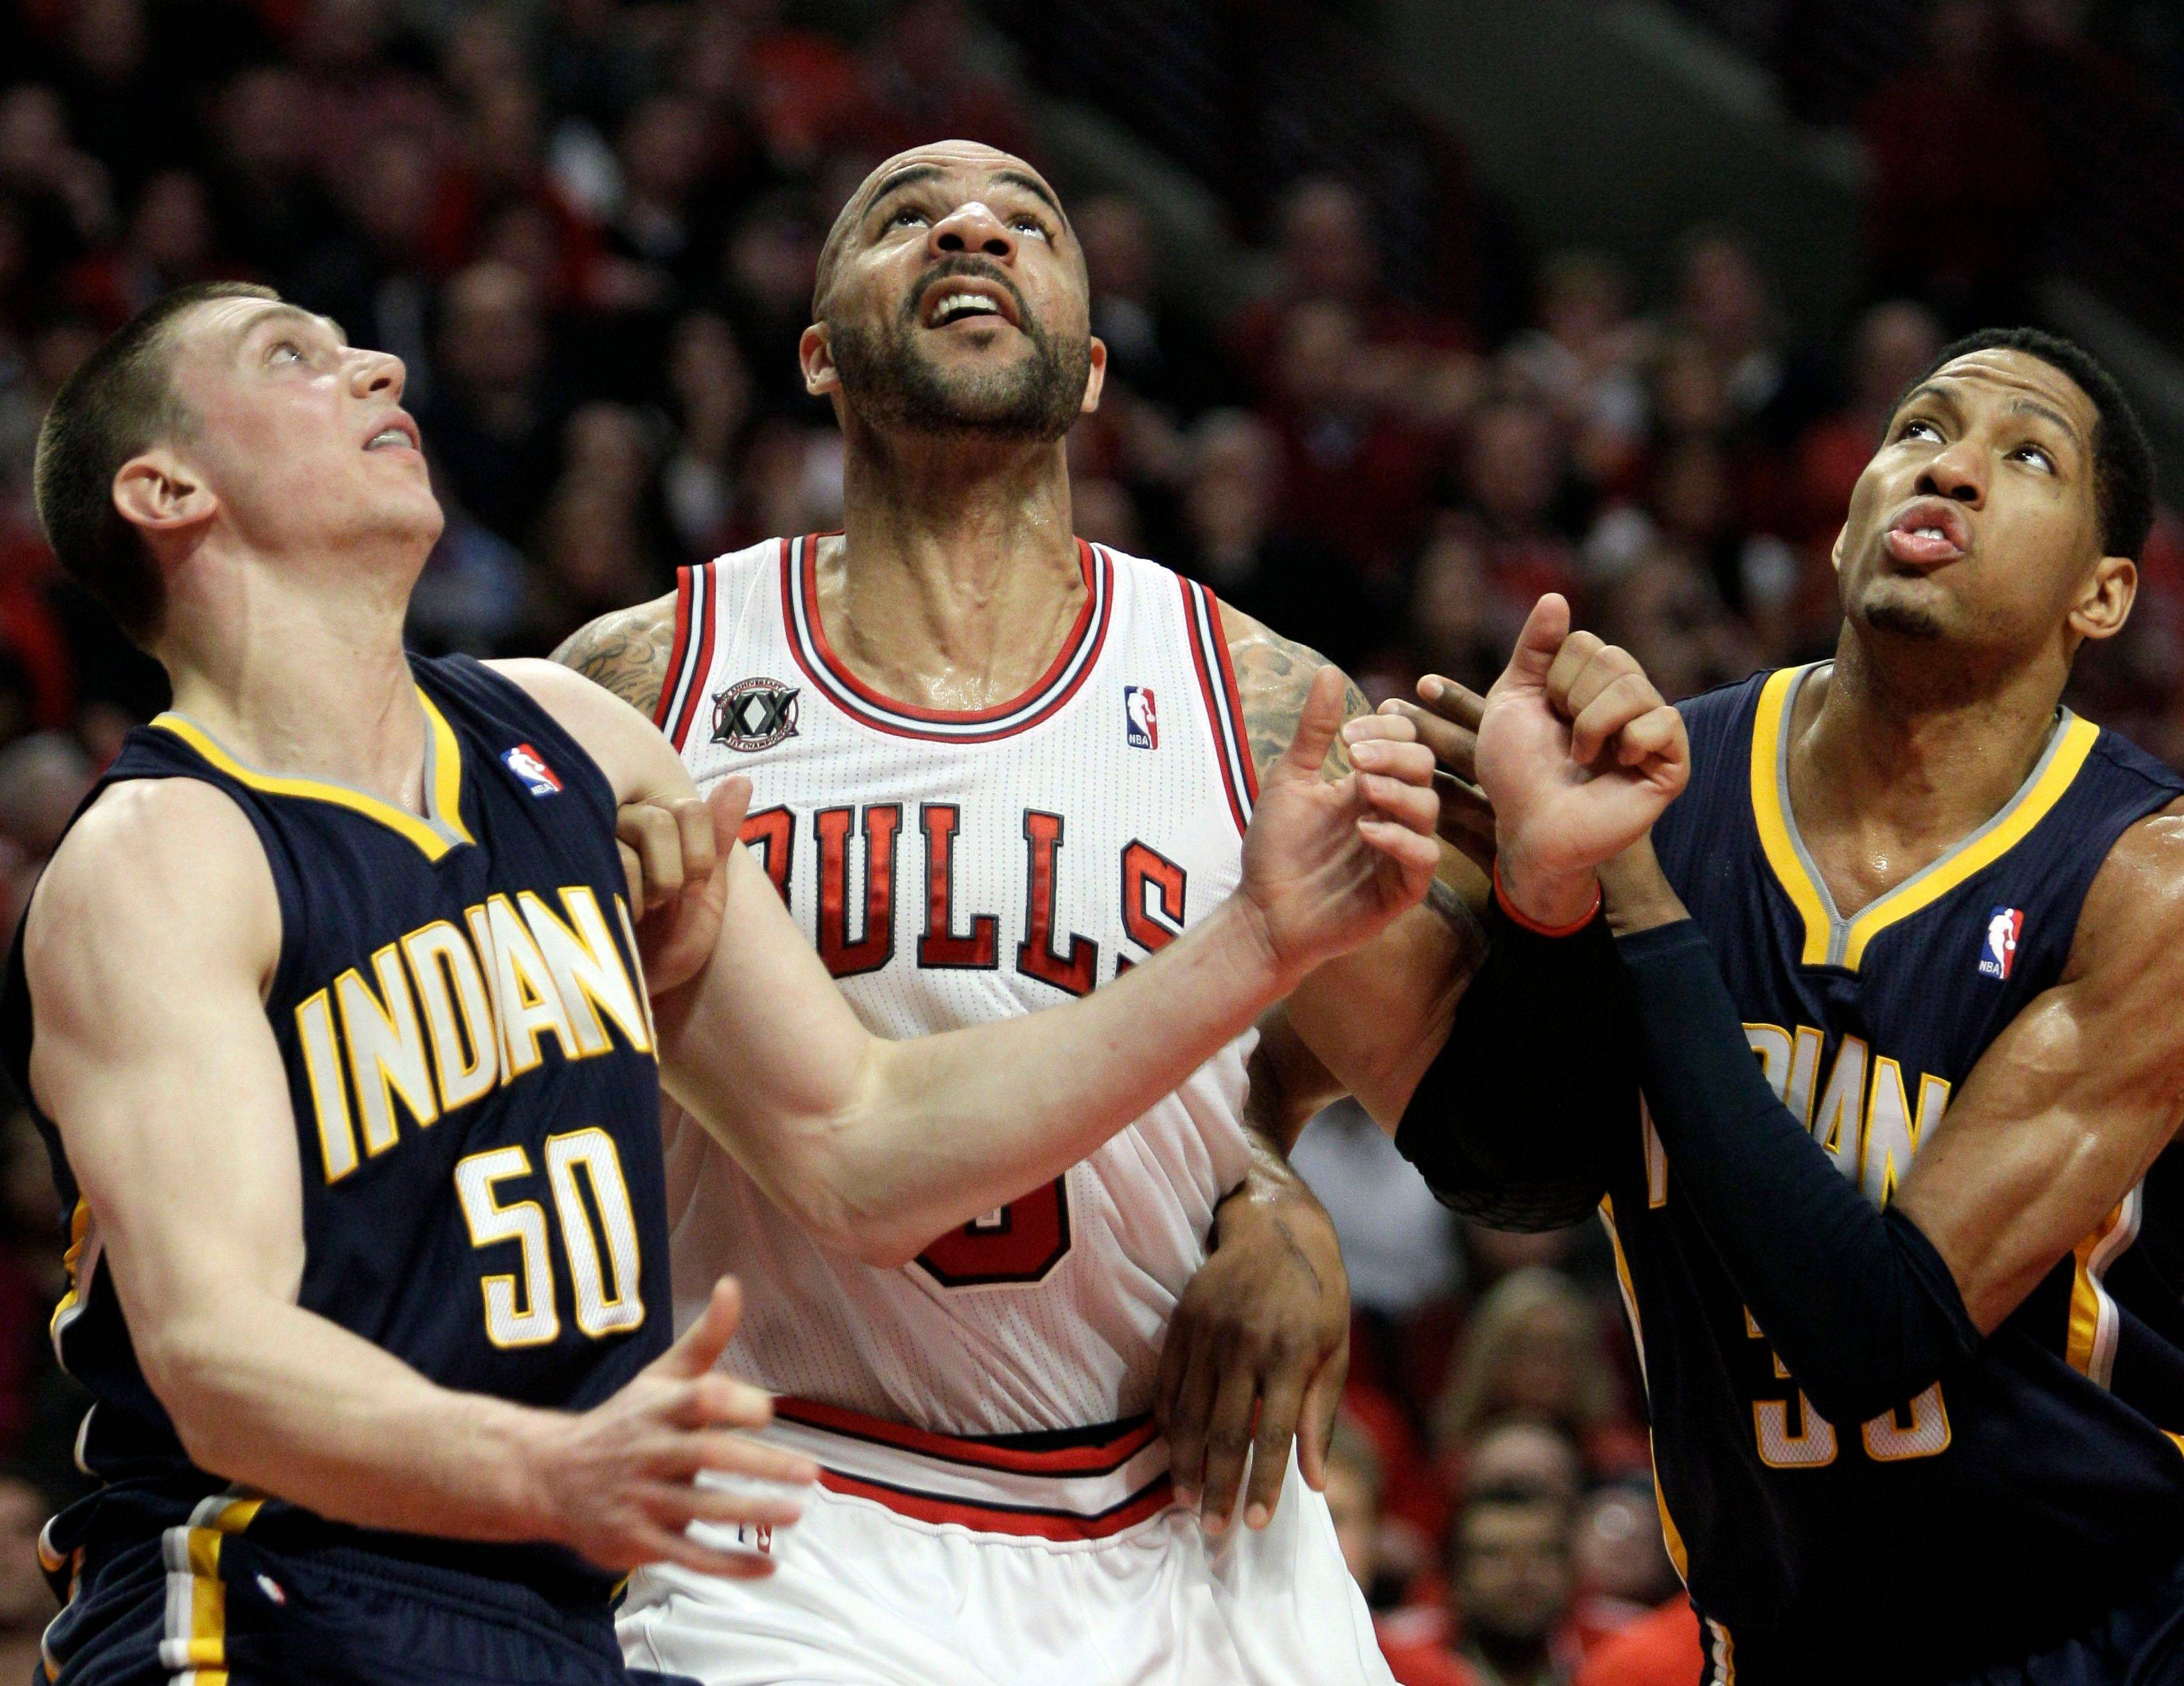 Carlos Boozer, center, looks up as he battles for a rebound against the Indiana Pacers' Tyler Hansbrough, left, and Danny Granger during Game 2 in Chicago. The Bulls won 96-90.